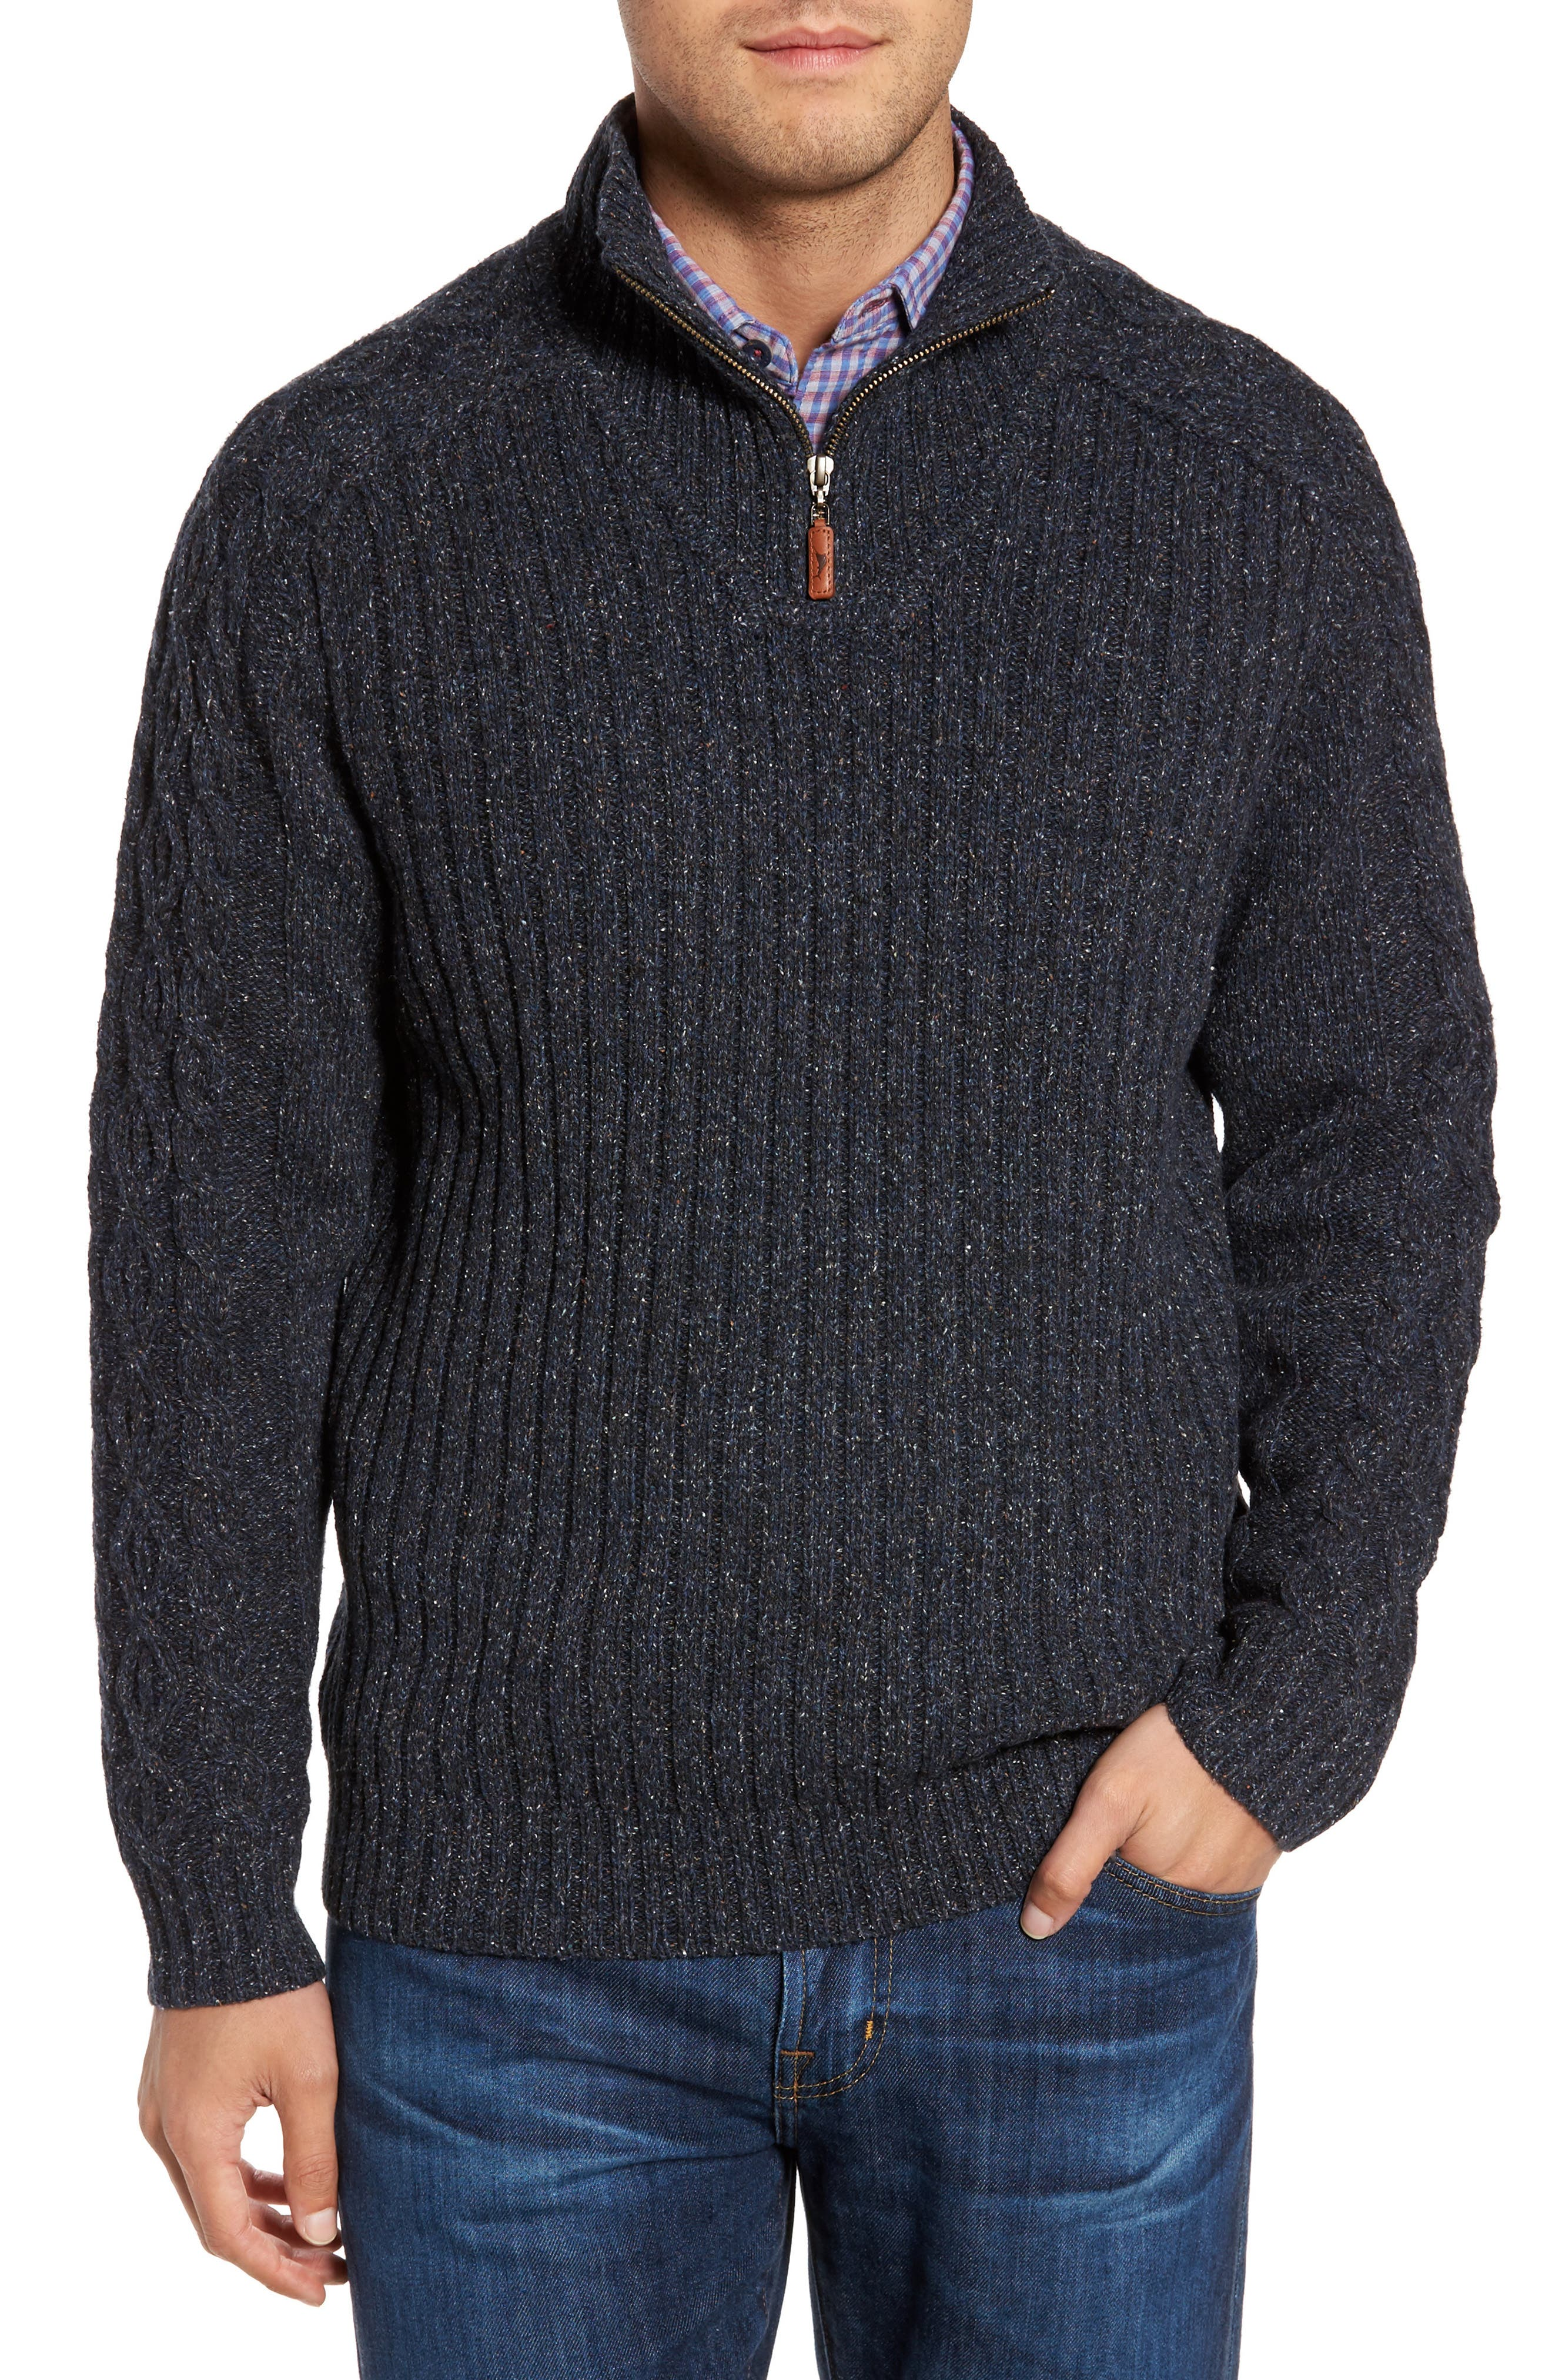 Alternate Image 1 Selected - Tommy Bahama Hamada Quarter Zip Sweater